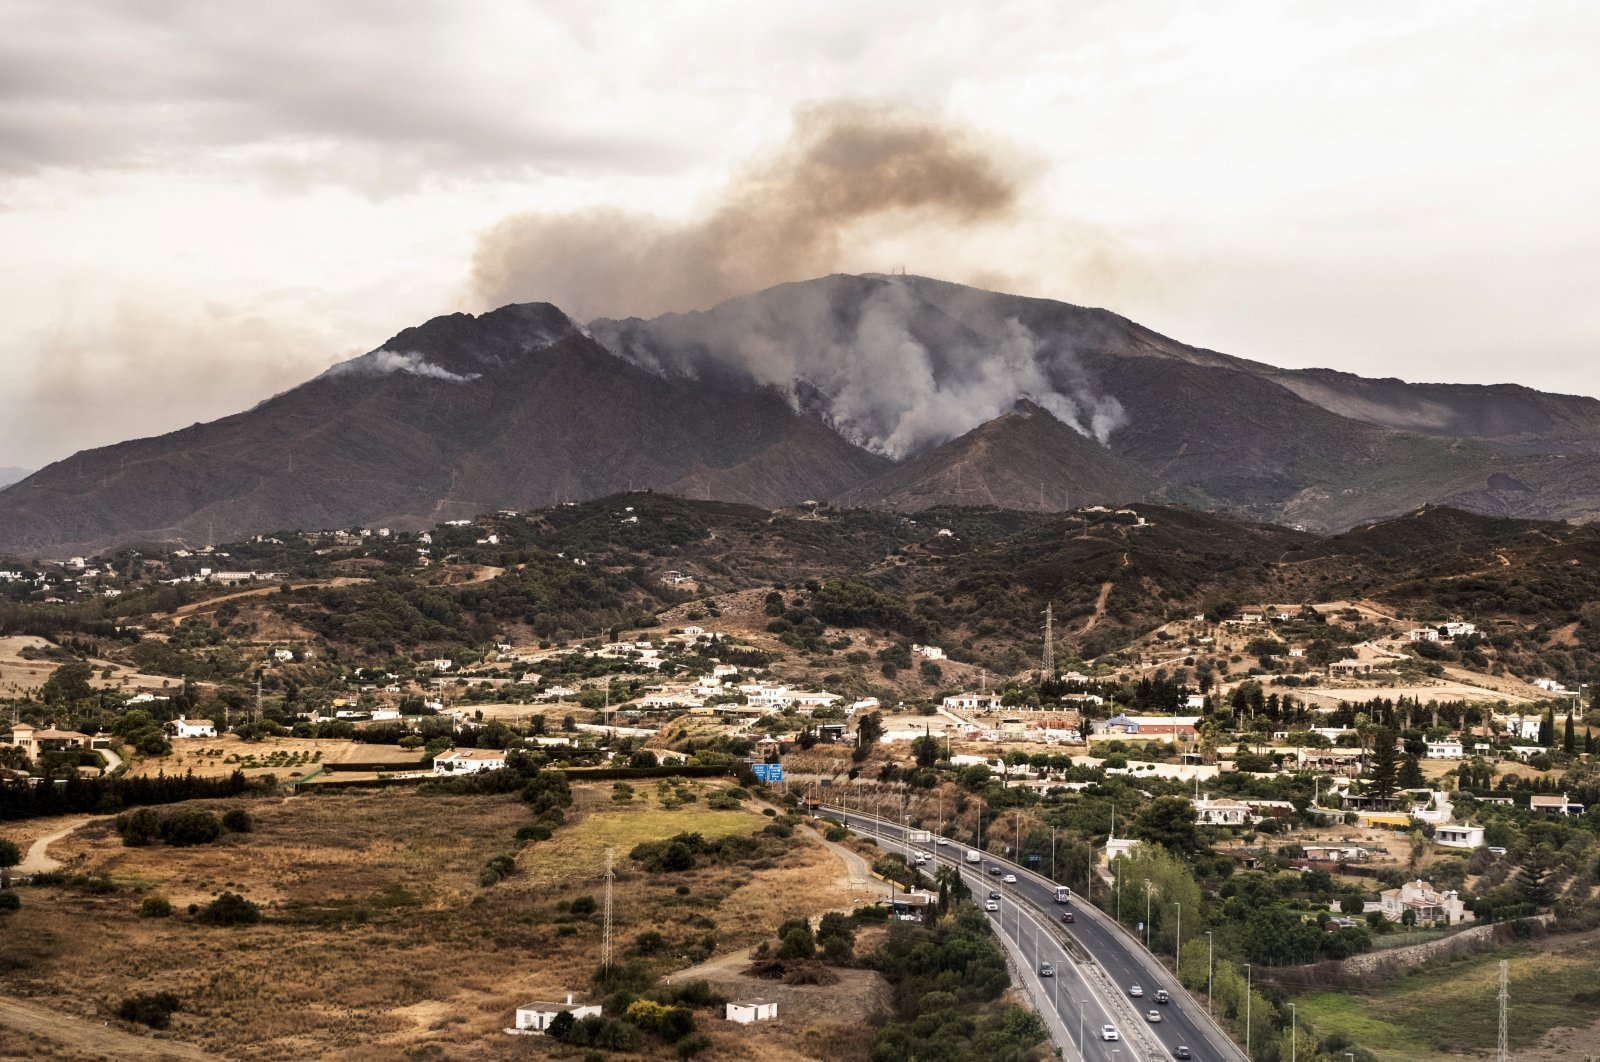 Smoke rises over smoking mountains near the town of Jubrique, in Malaga province, Spain, Sept. 13, 2021. (AP Photo)